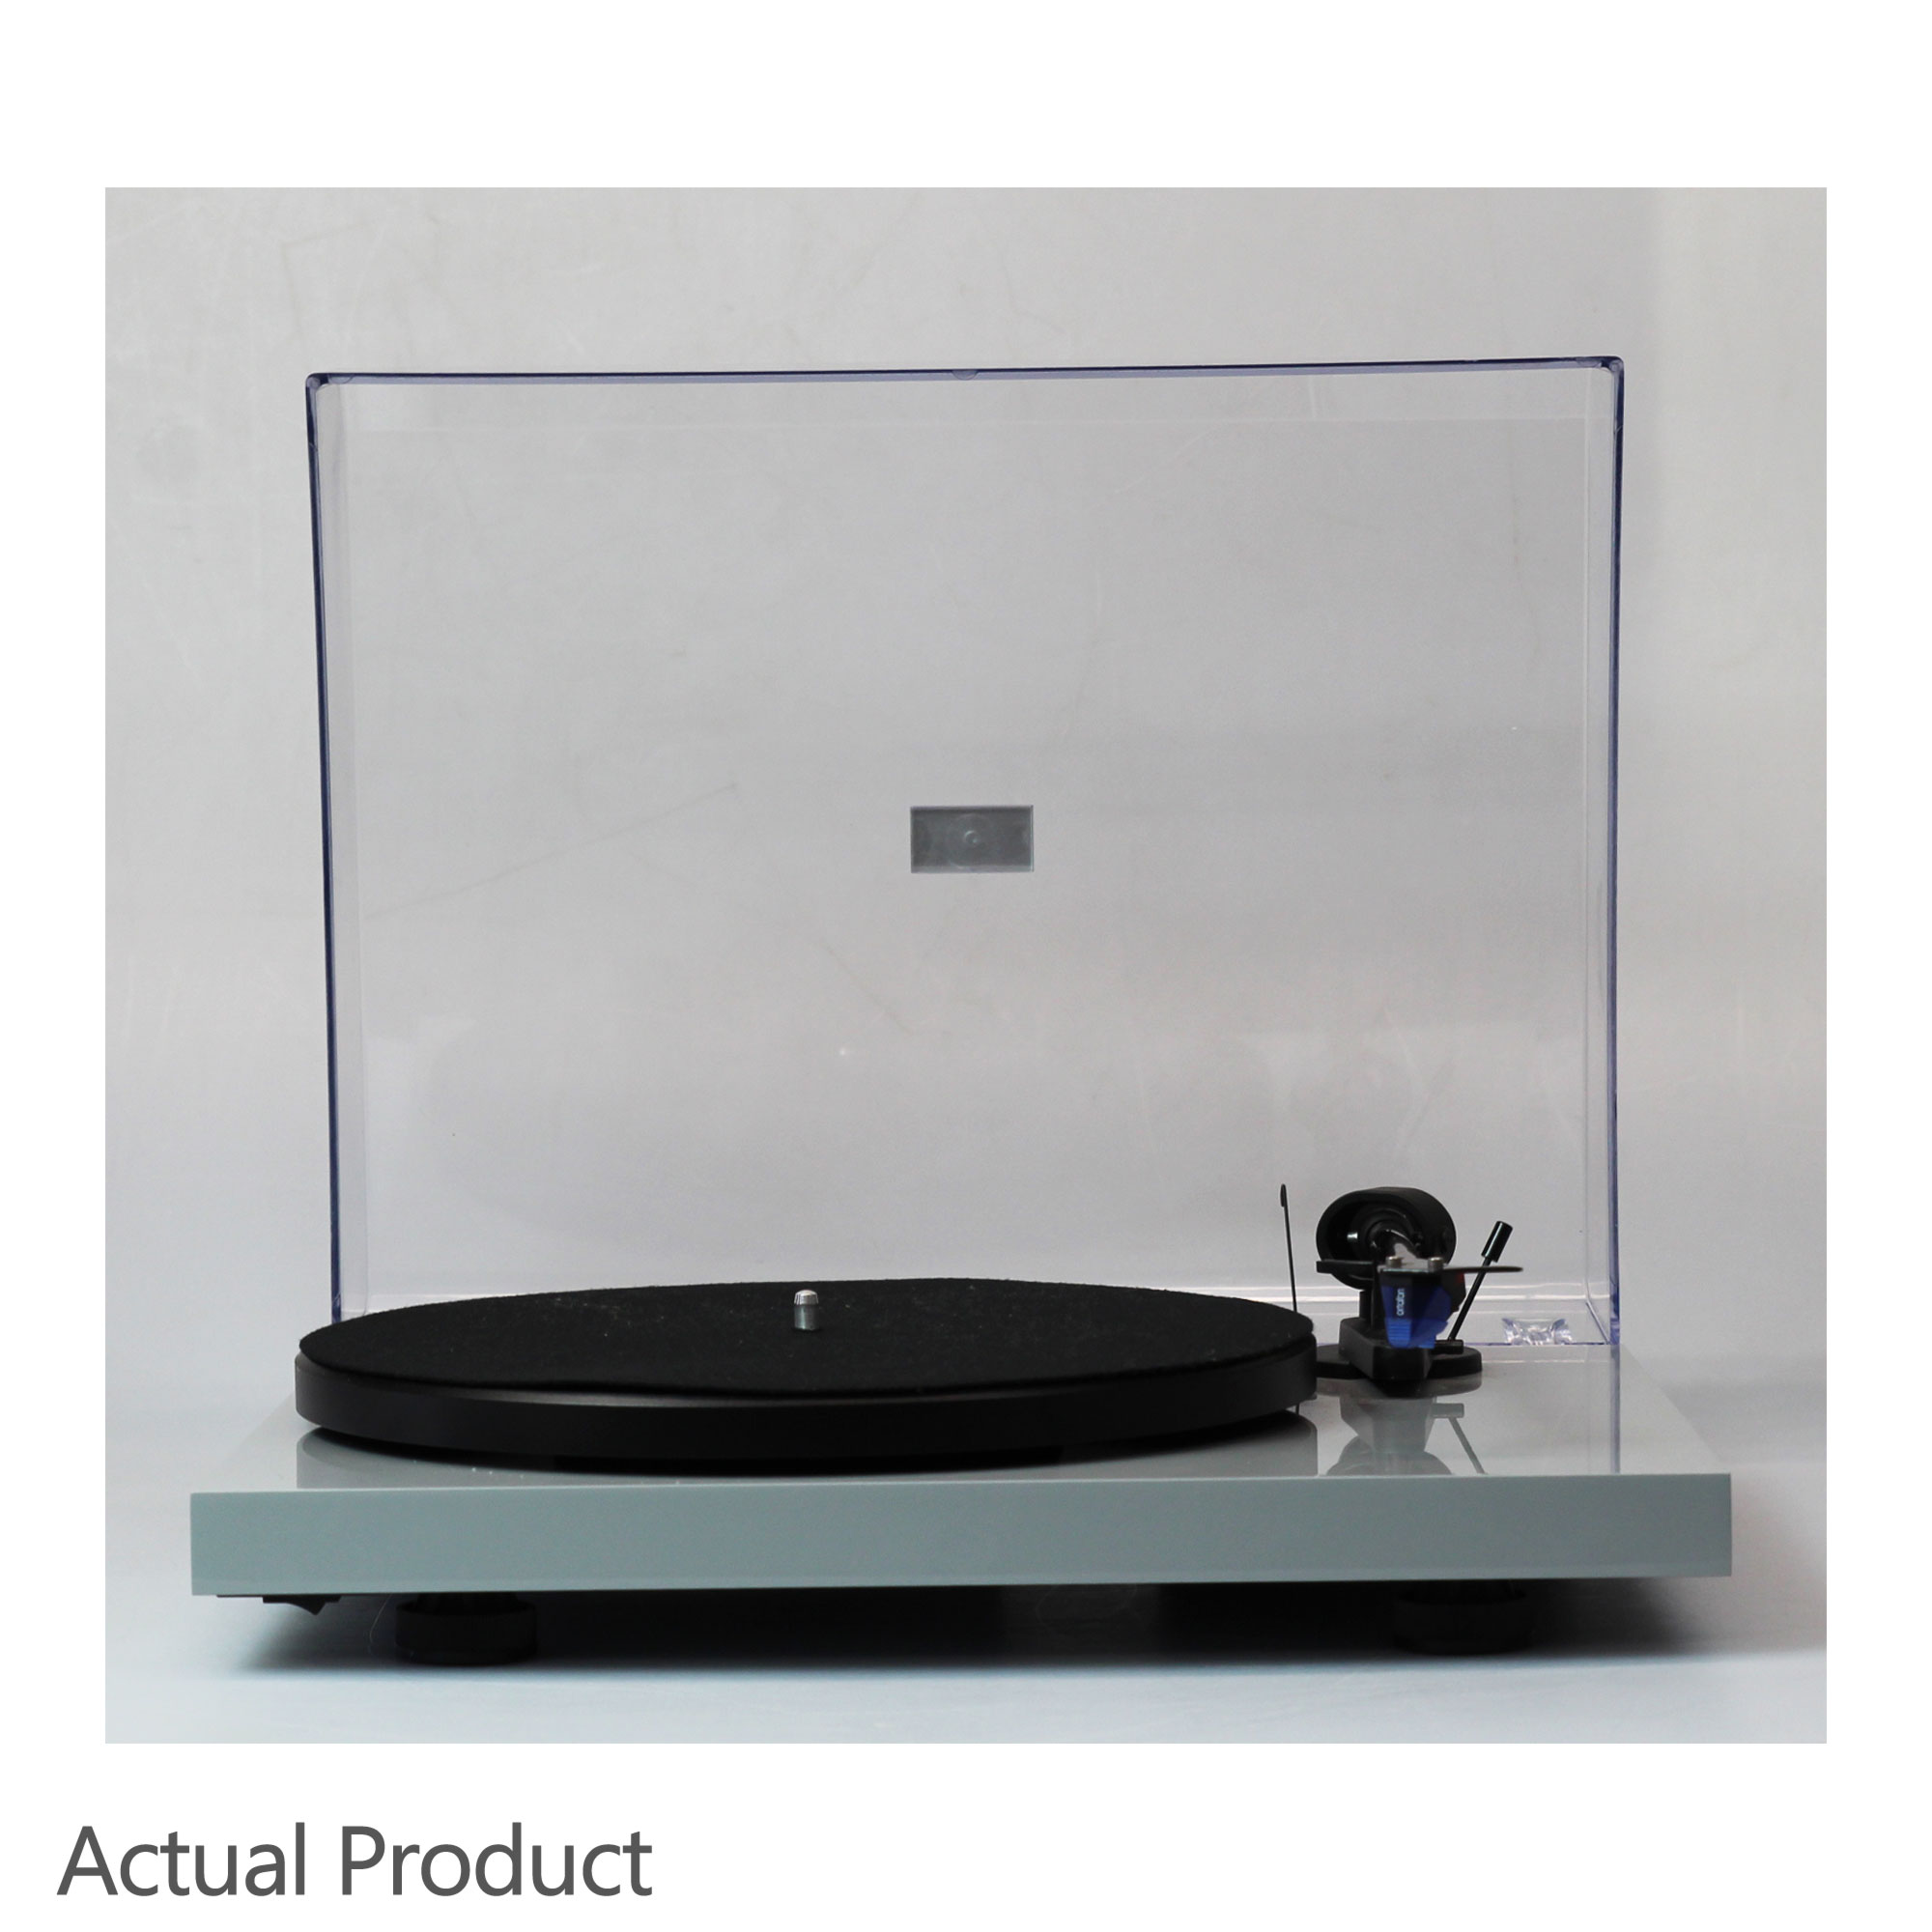 Details about Pro-Ject Debut Carbon DC Turntable - Grey + 2M Blue Cartridge  Vinyl Record